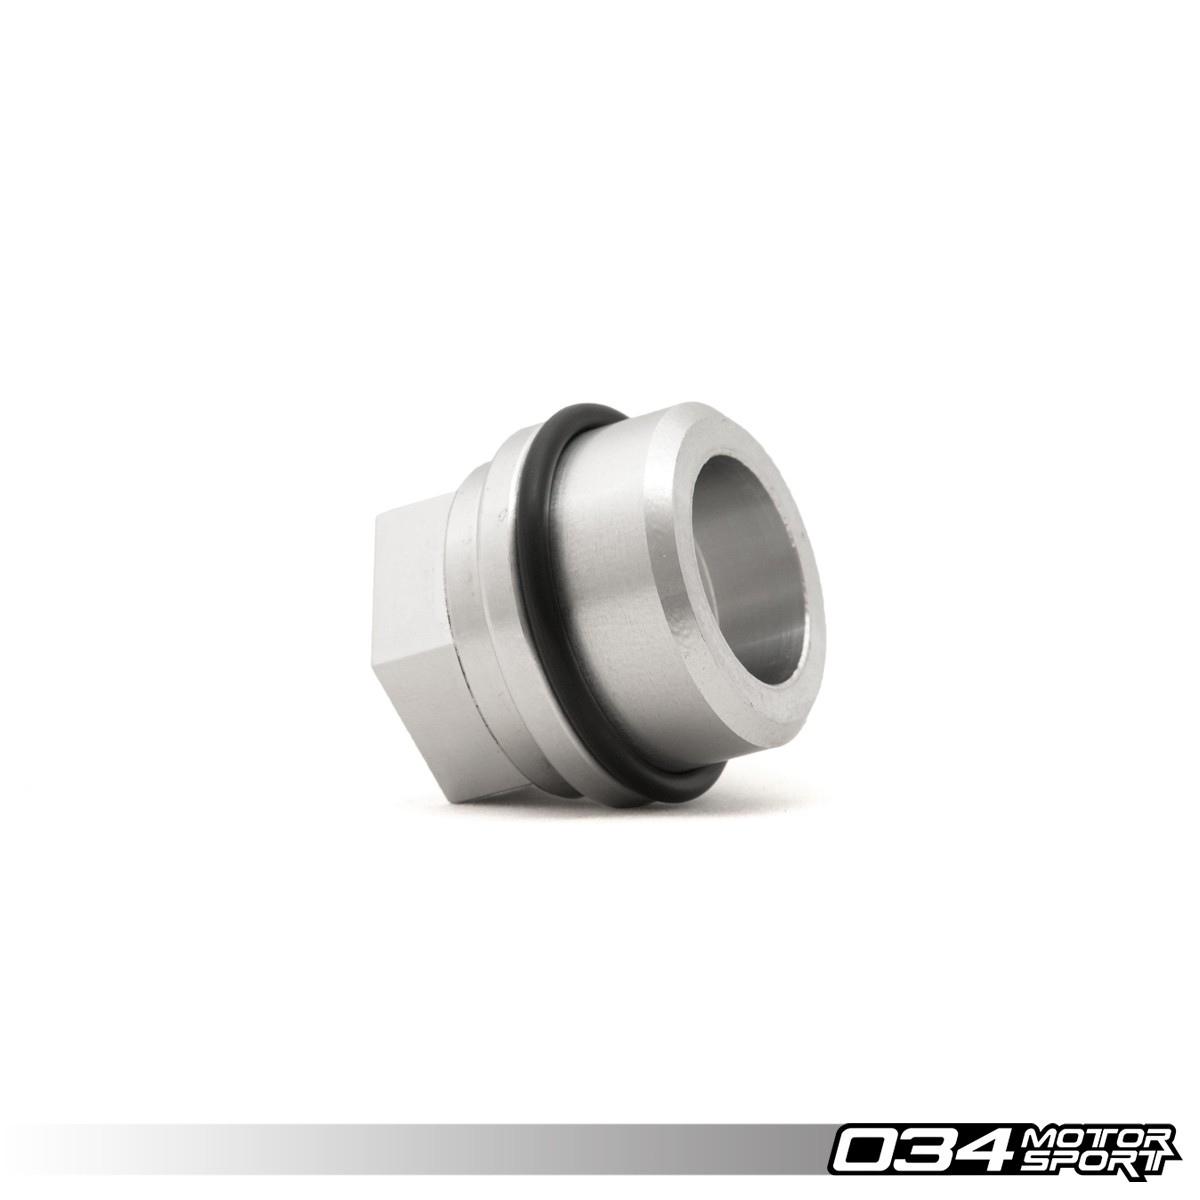 "Block Breather Adapter, Audi/Volkswagen 1.8T, Billet Aluminum, Threaded 3/4"" NPT 